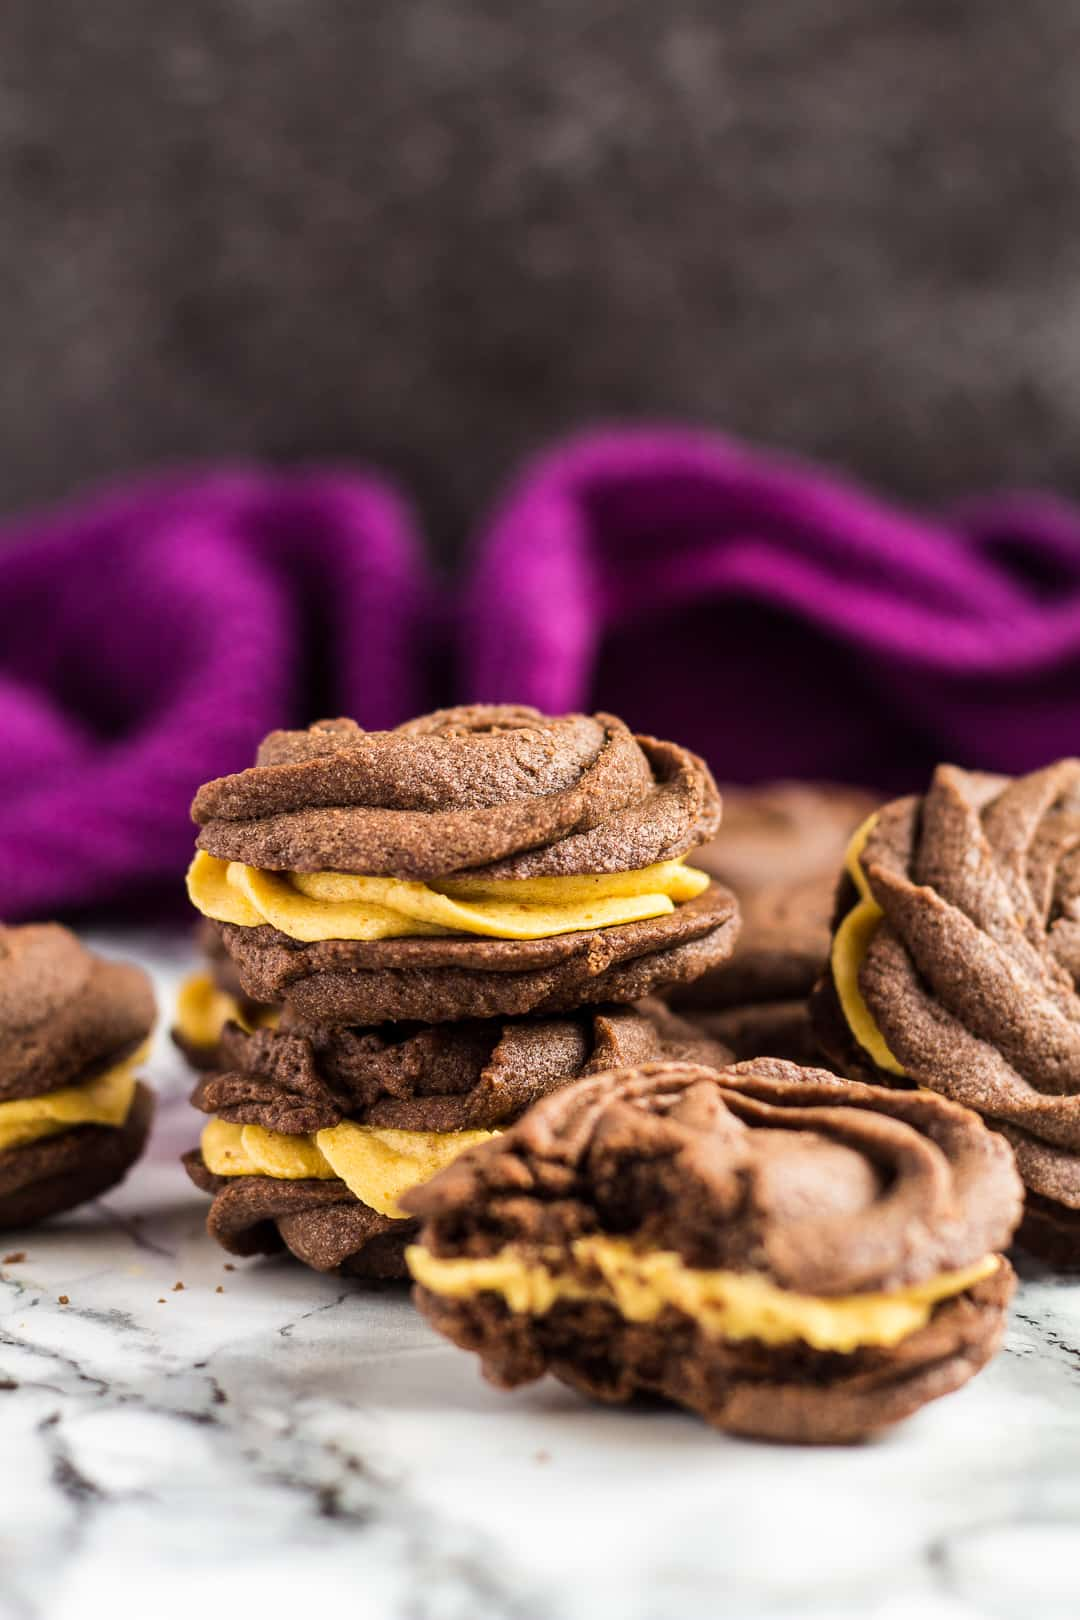 A chocolate pumpkin Viennese whirl on top of another one with more scattered around.